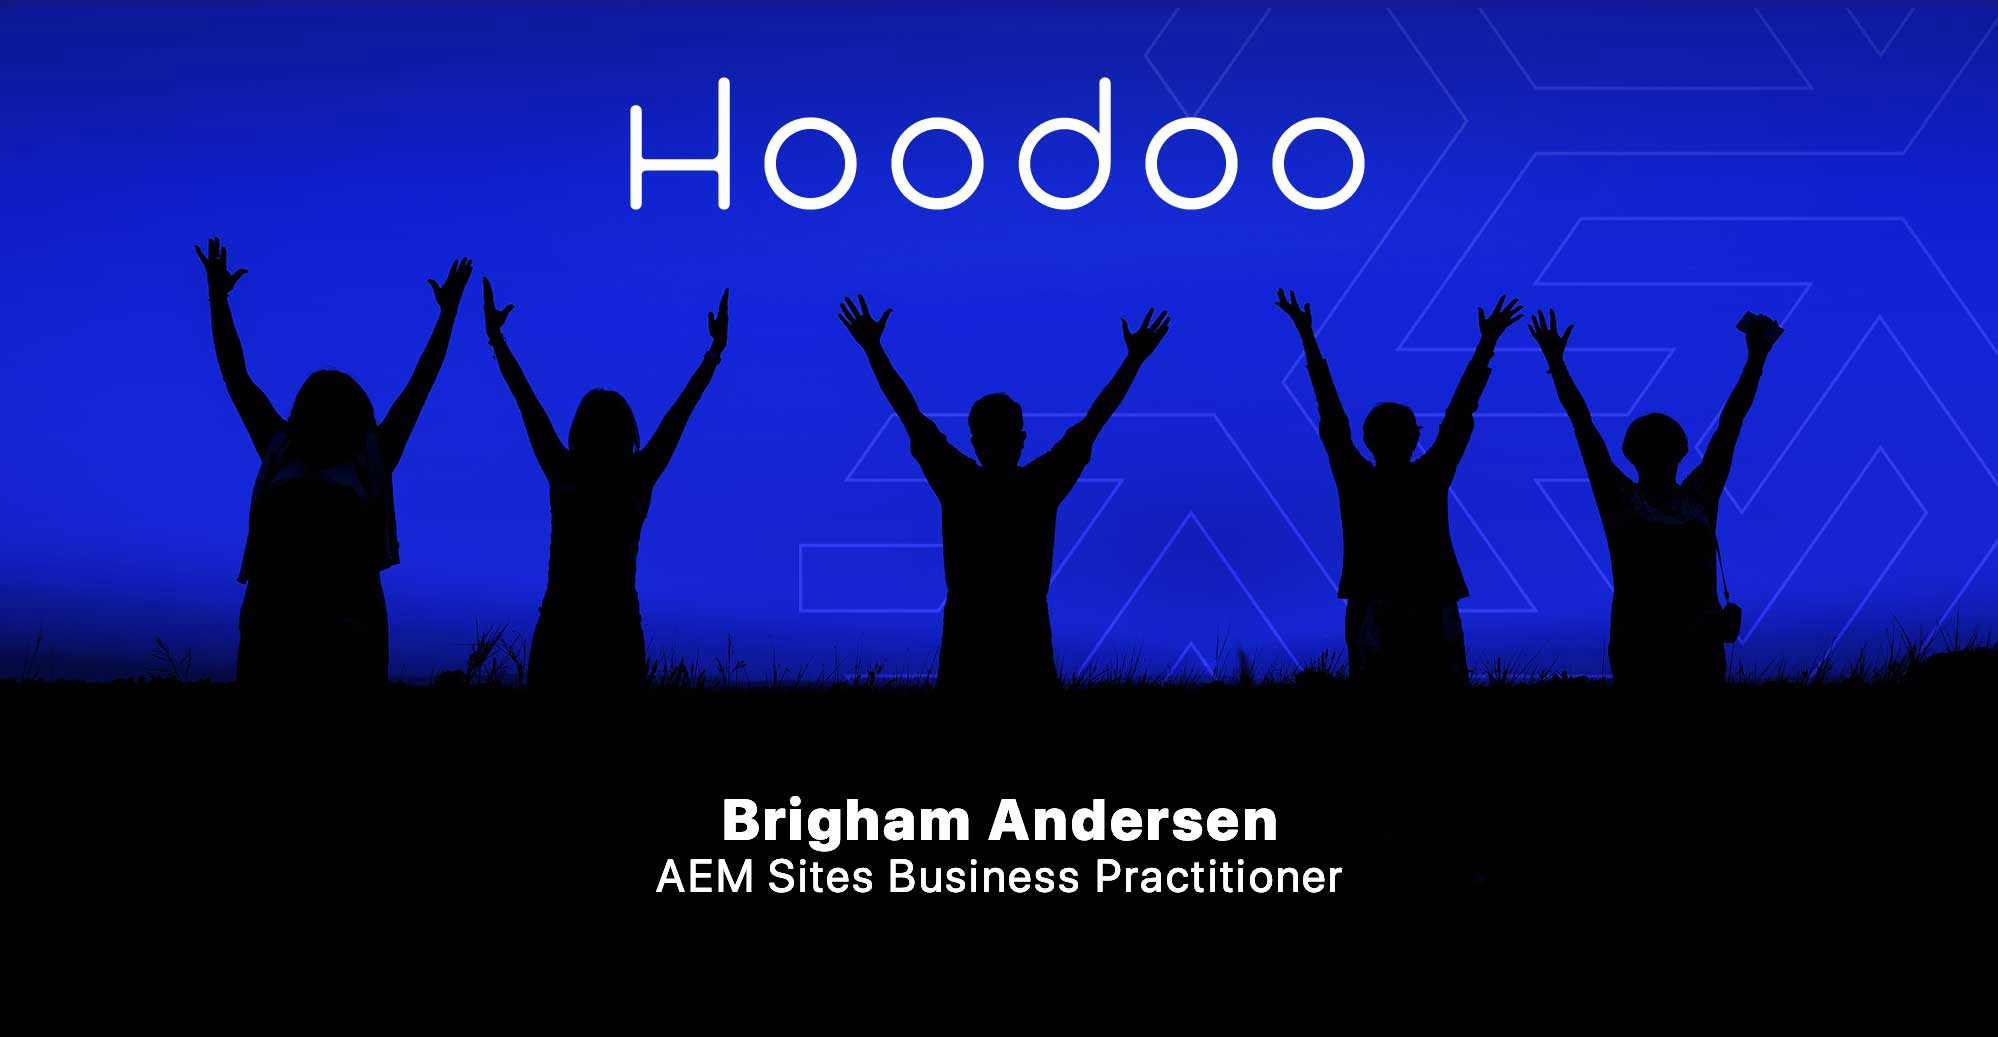 Brigham Andersen Completes AEM Sites Business Practitioner Certification